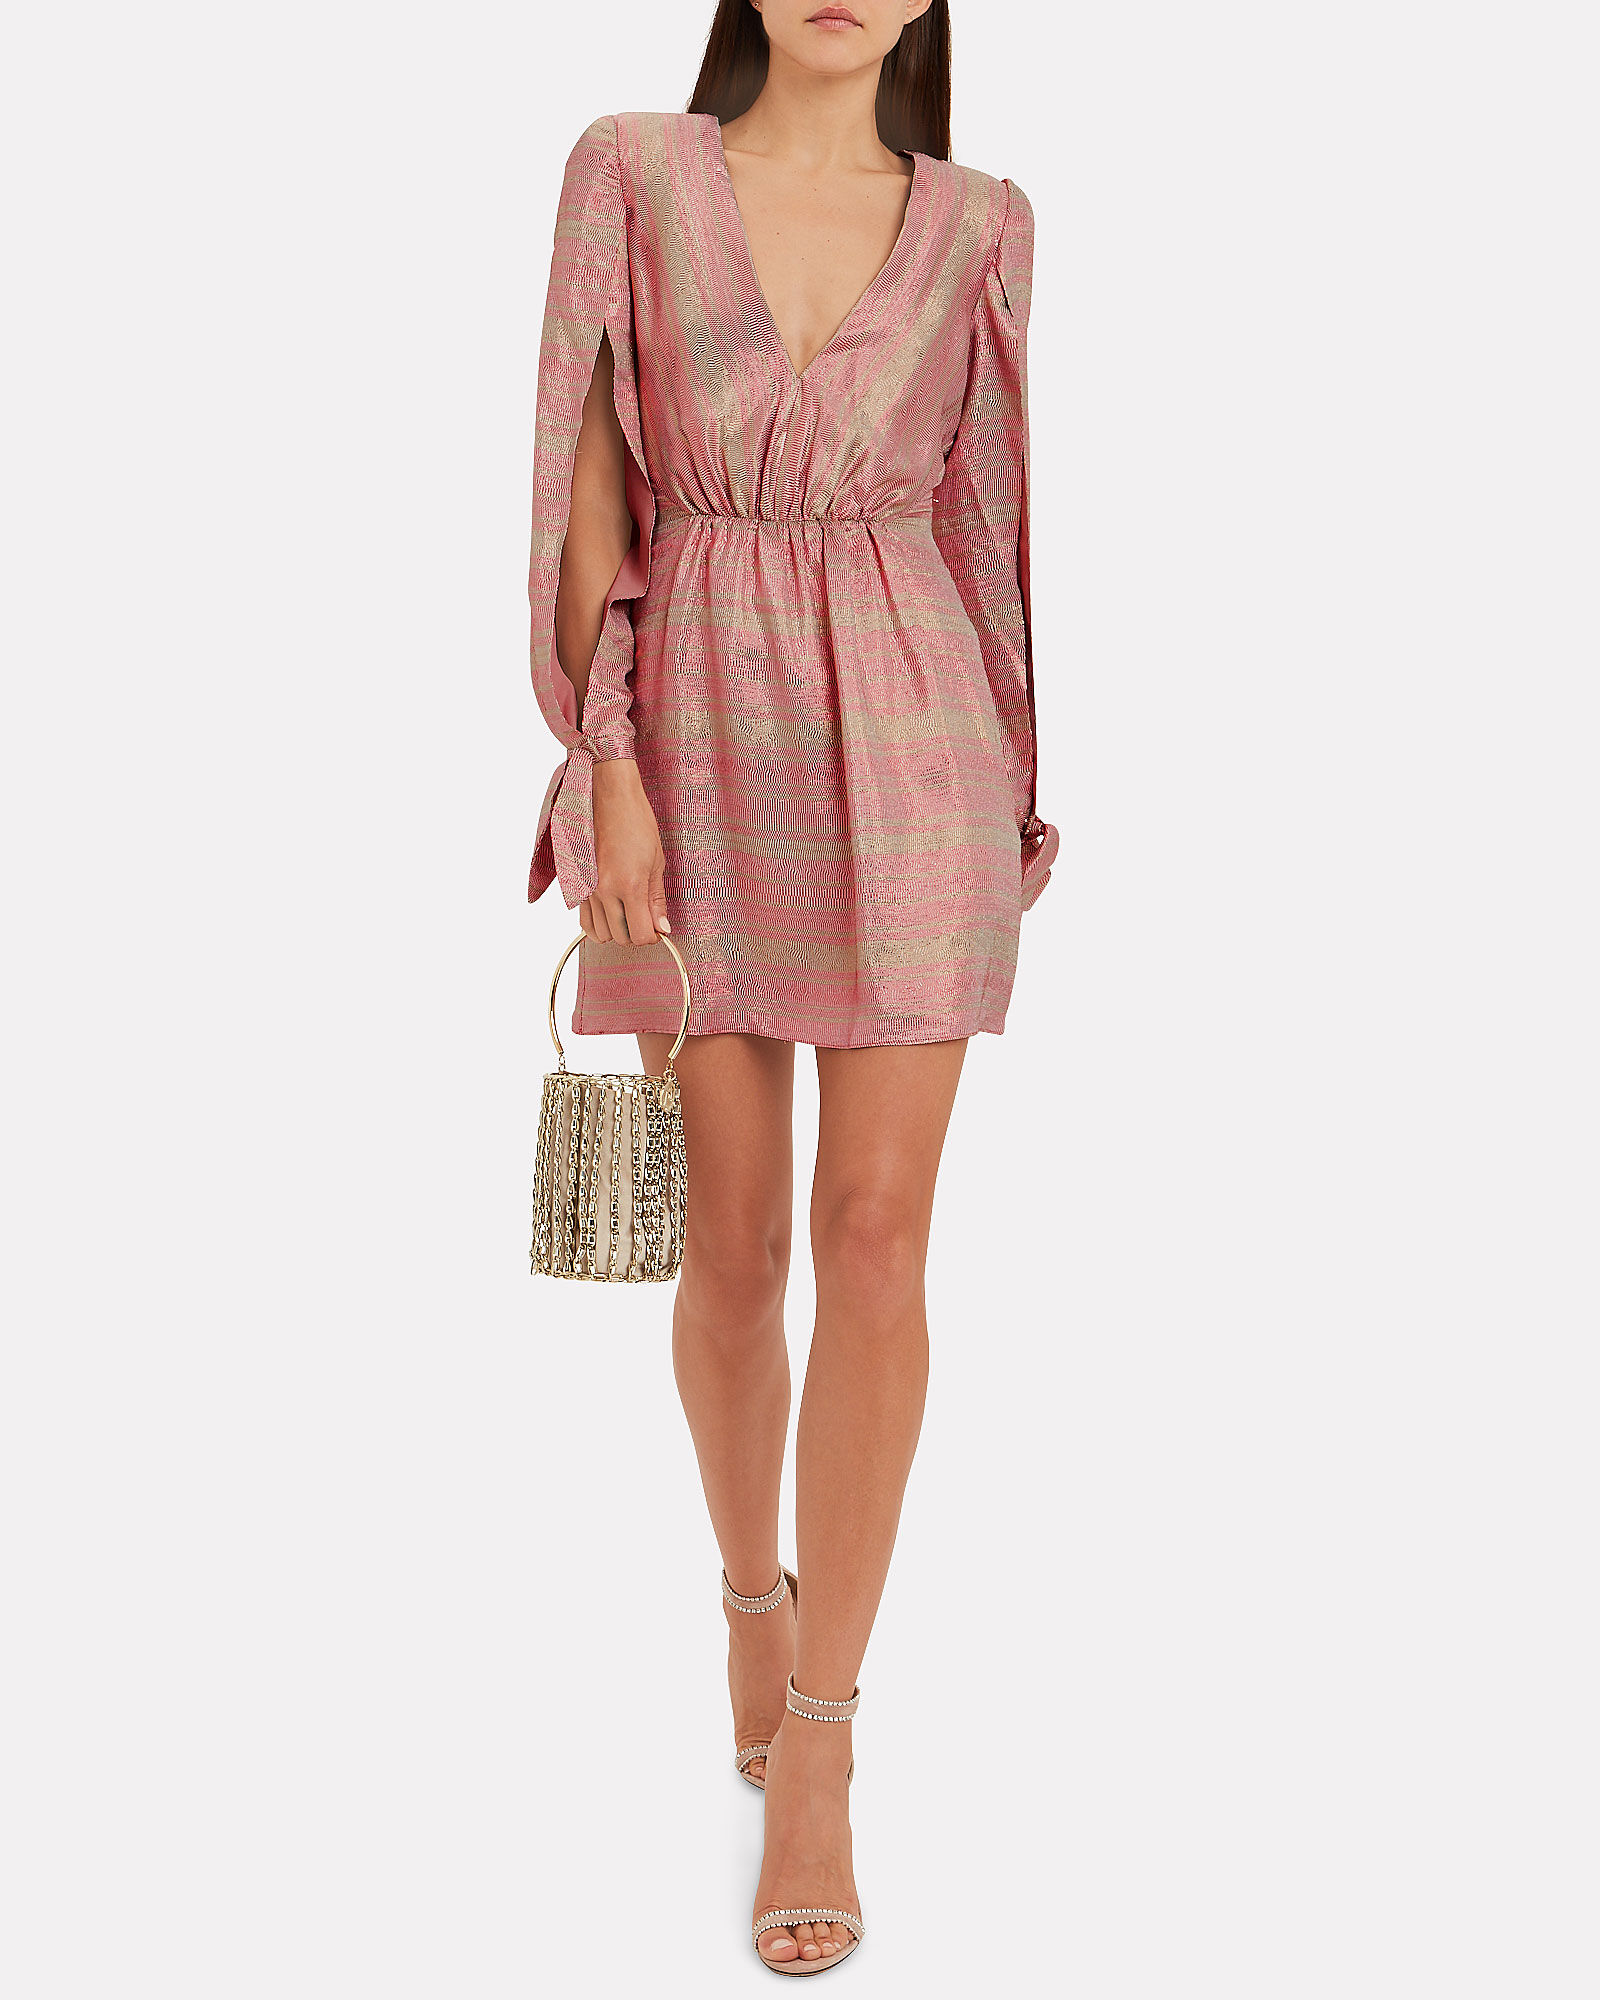 Joplin Gathered Metallic Silk Mini Dress, PINK, hi-res